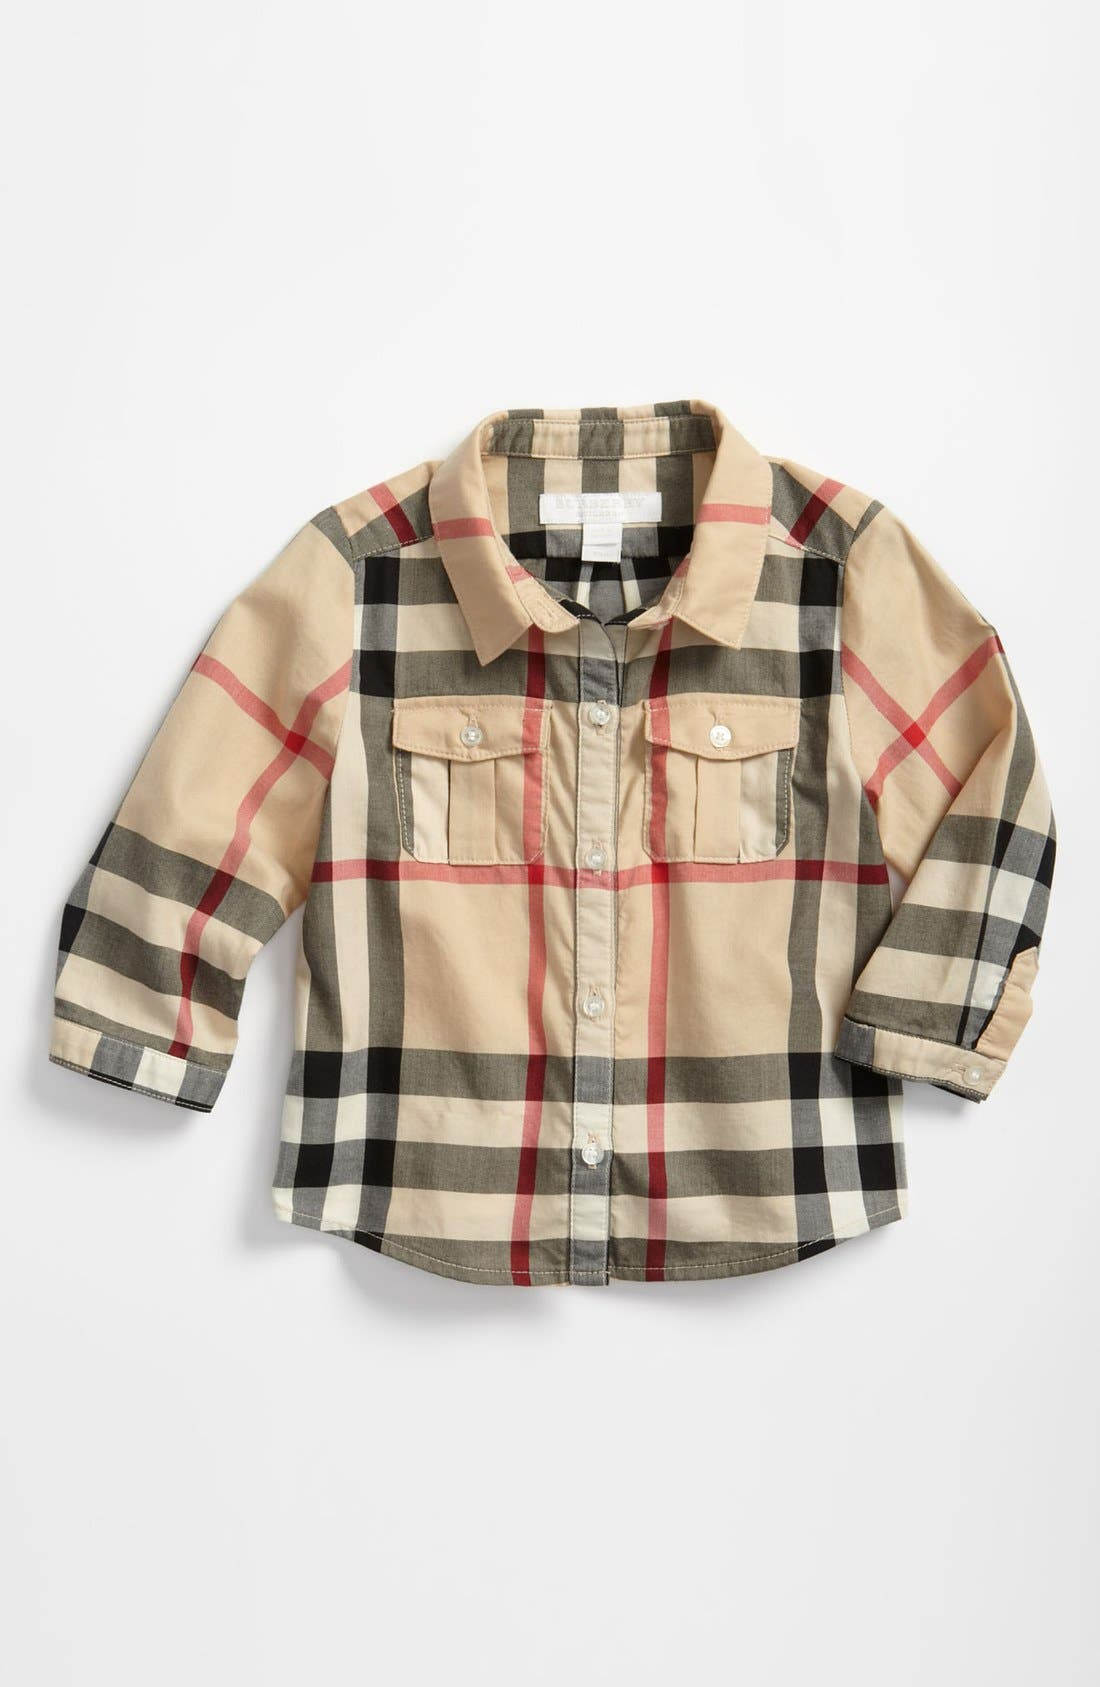 BURBERRY Check Print Shirt